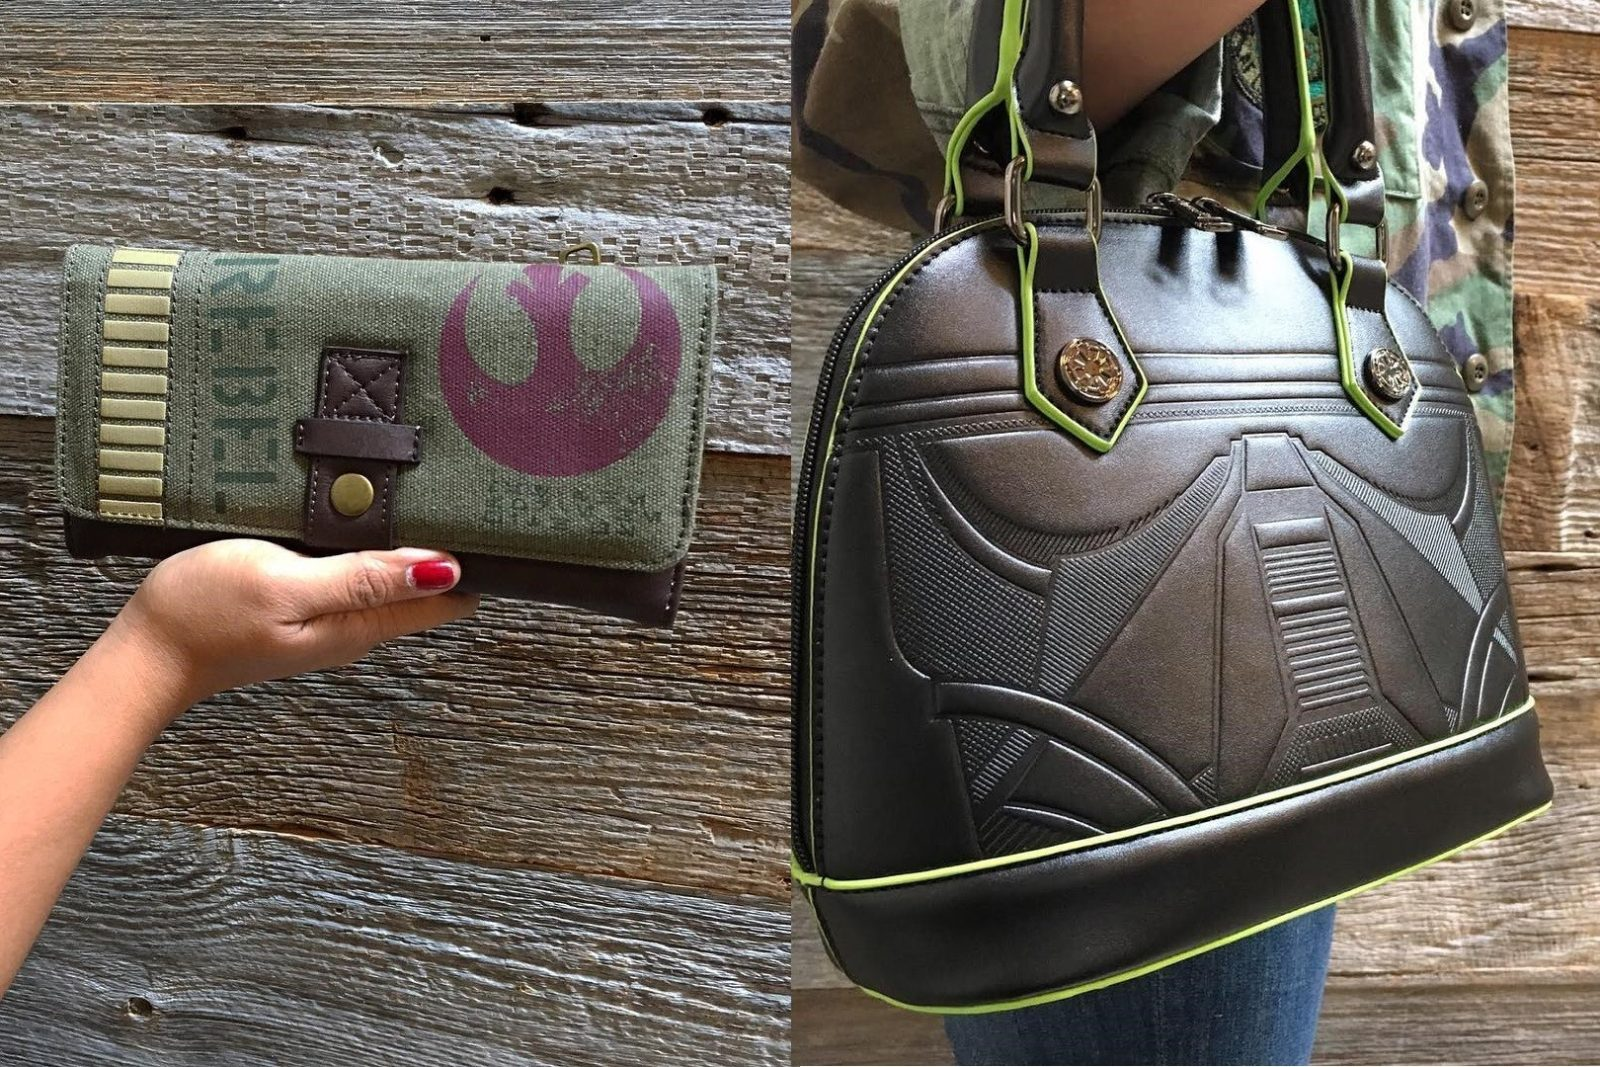 Loungefly x Rogue One collection coming soon!